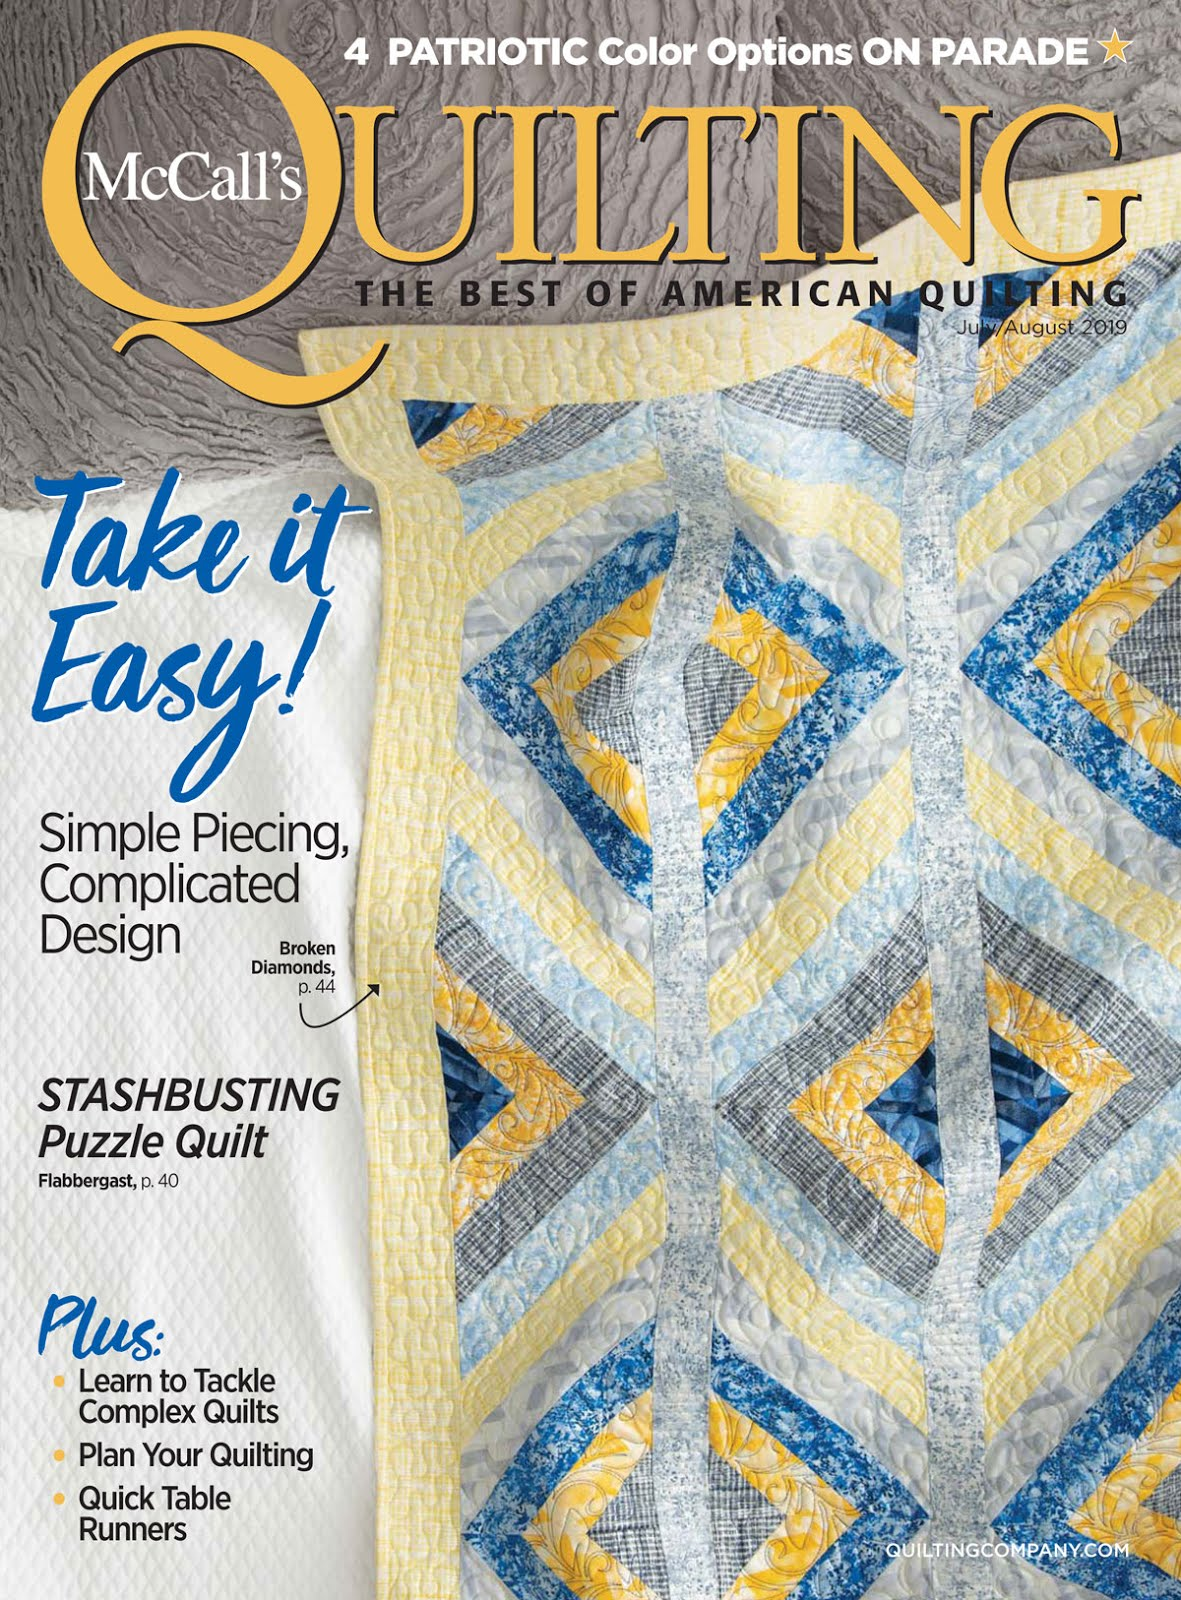 ONLY $4.99 ! August 2019 McCall's Quilting (click!)